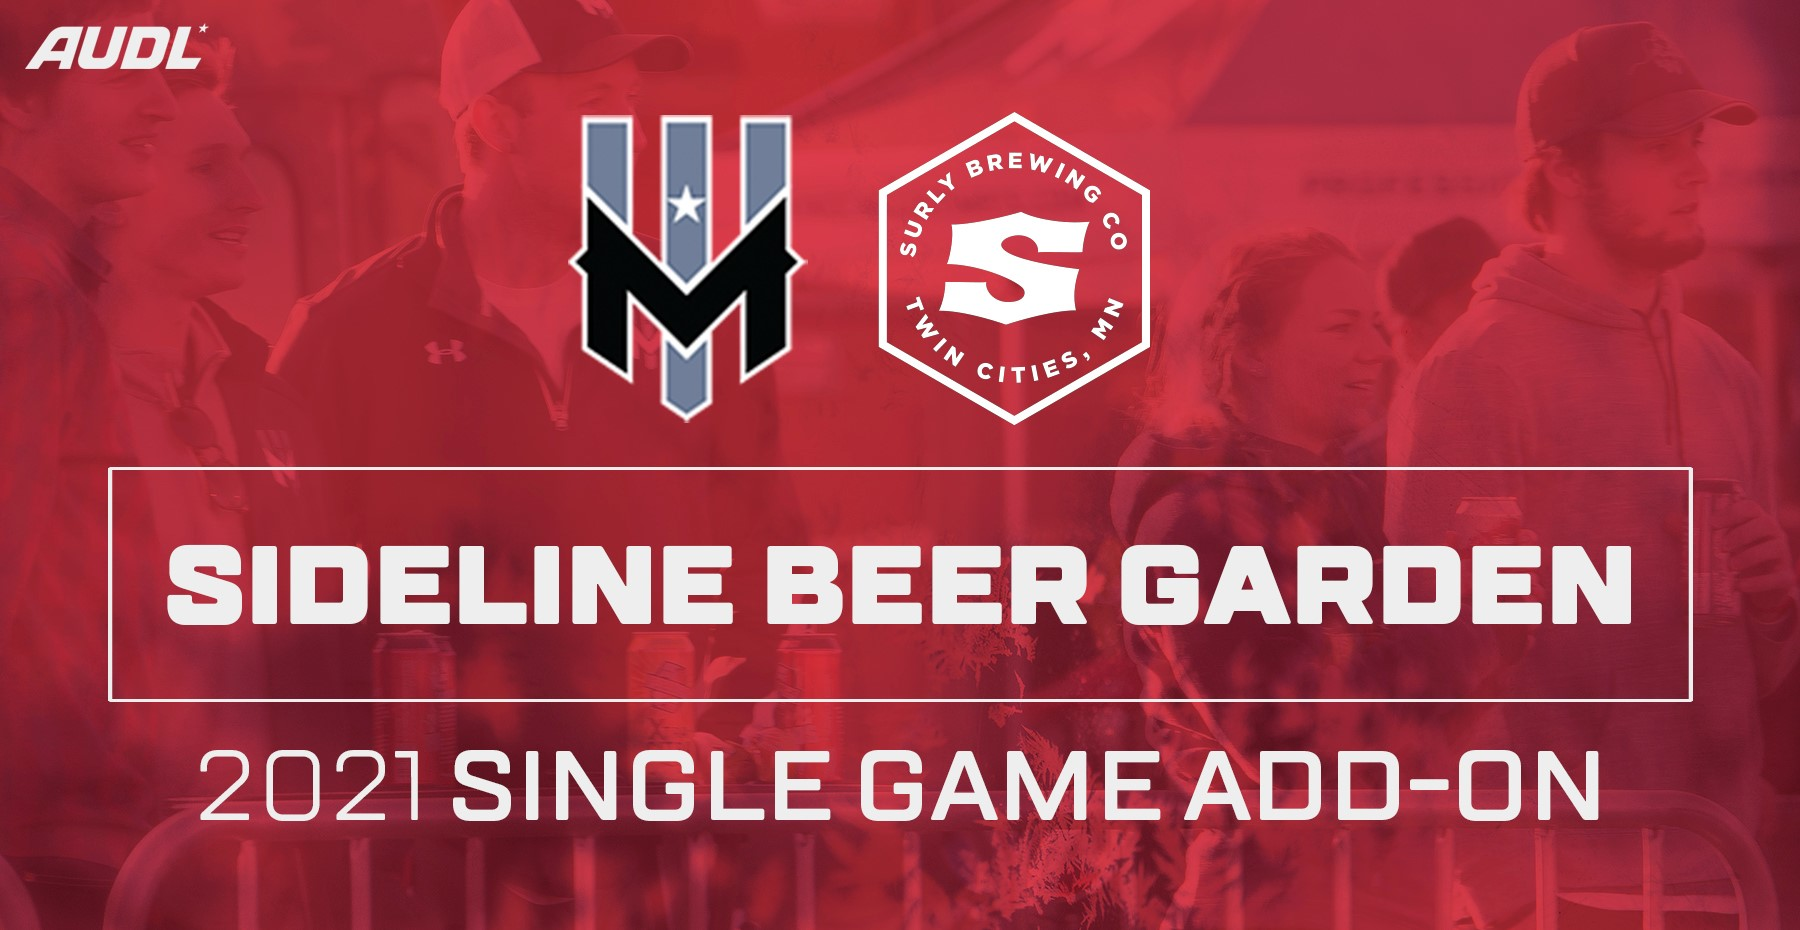 2021 Surly Sideline Beer Garden - Single Game Add-On